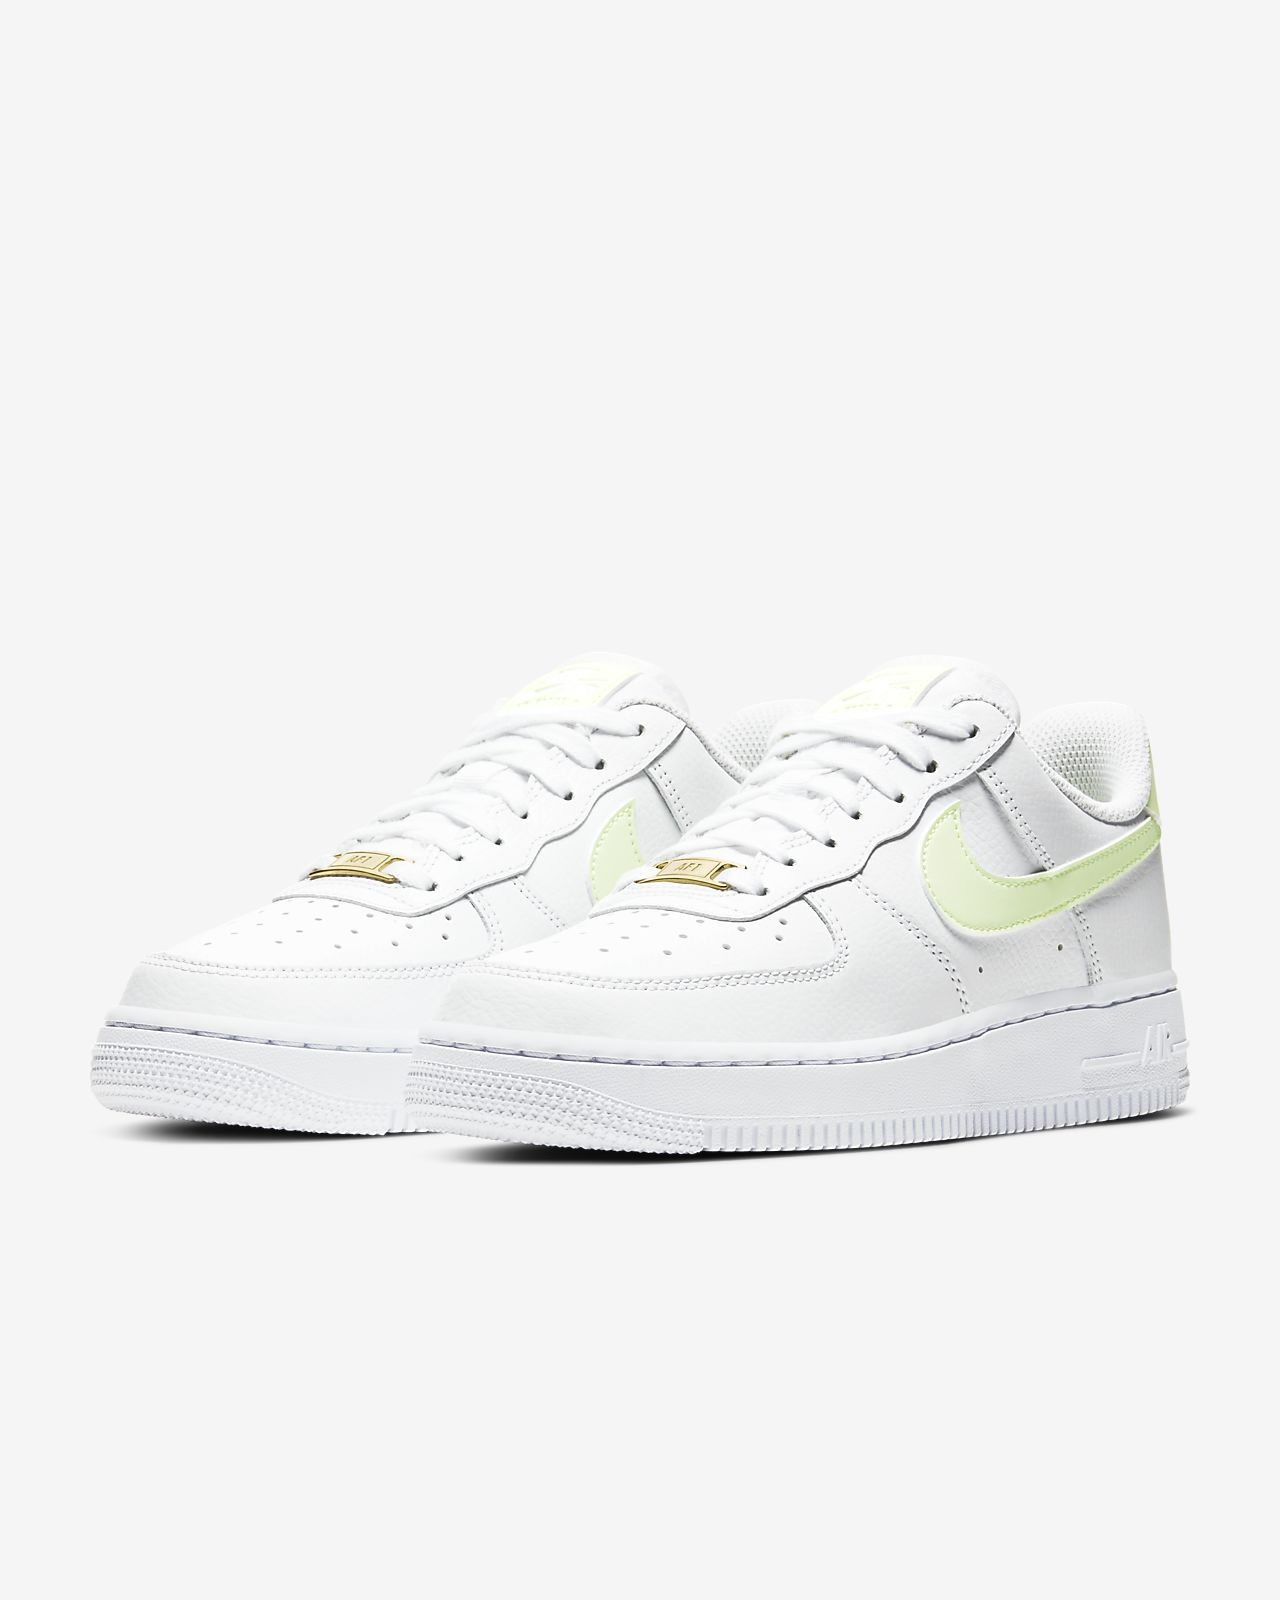 First Look At The OFF WHITE x Nike Air Force 1 Low Volt Toddler